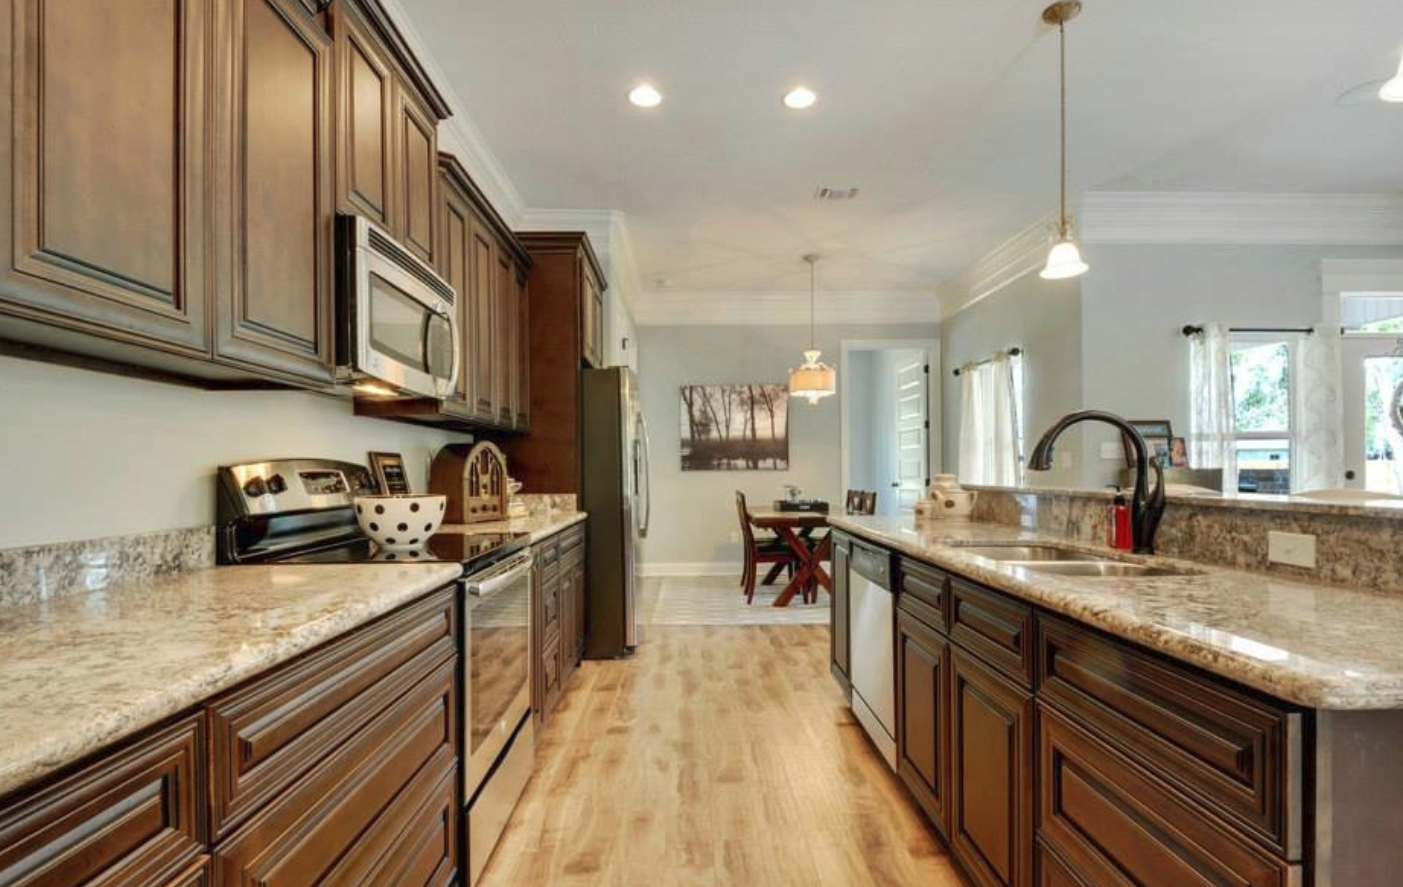 Proselect Hw Hamilton Walnut All Wood Stained Cabinets With Kalahari Gold Granite Countertop How To Remove Kitchen Cabinets Modern Kitchen Kitchen